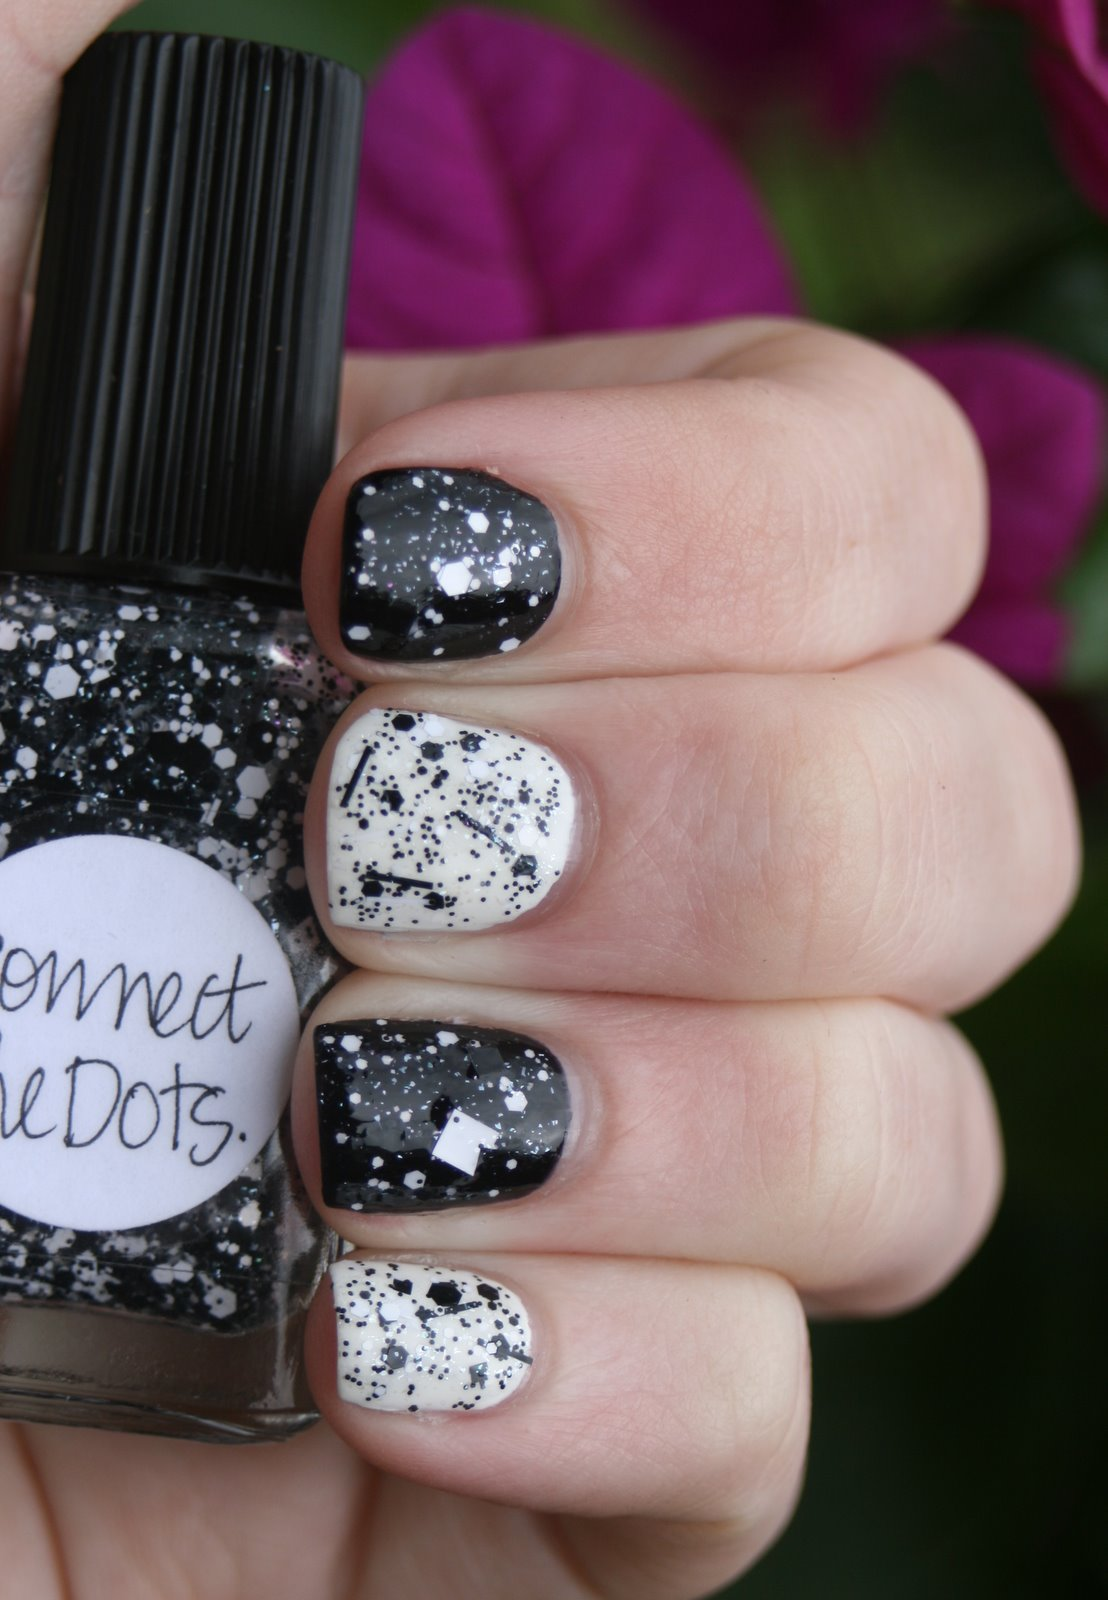 Lynnderella Connect the Dots swatch